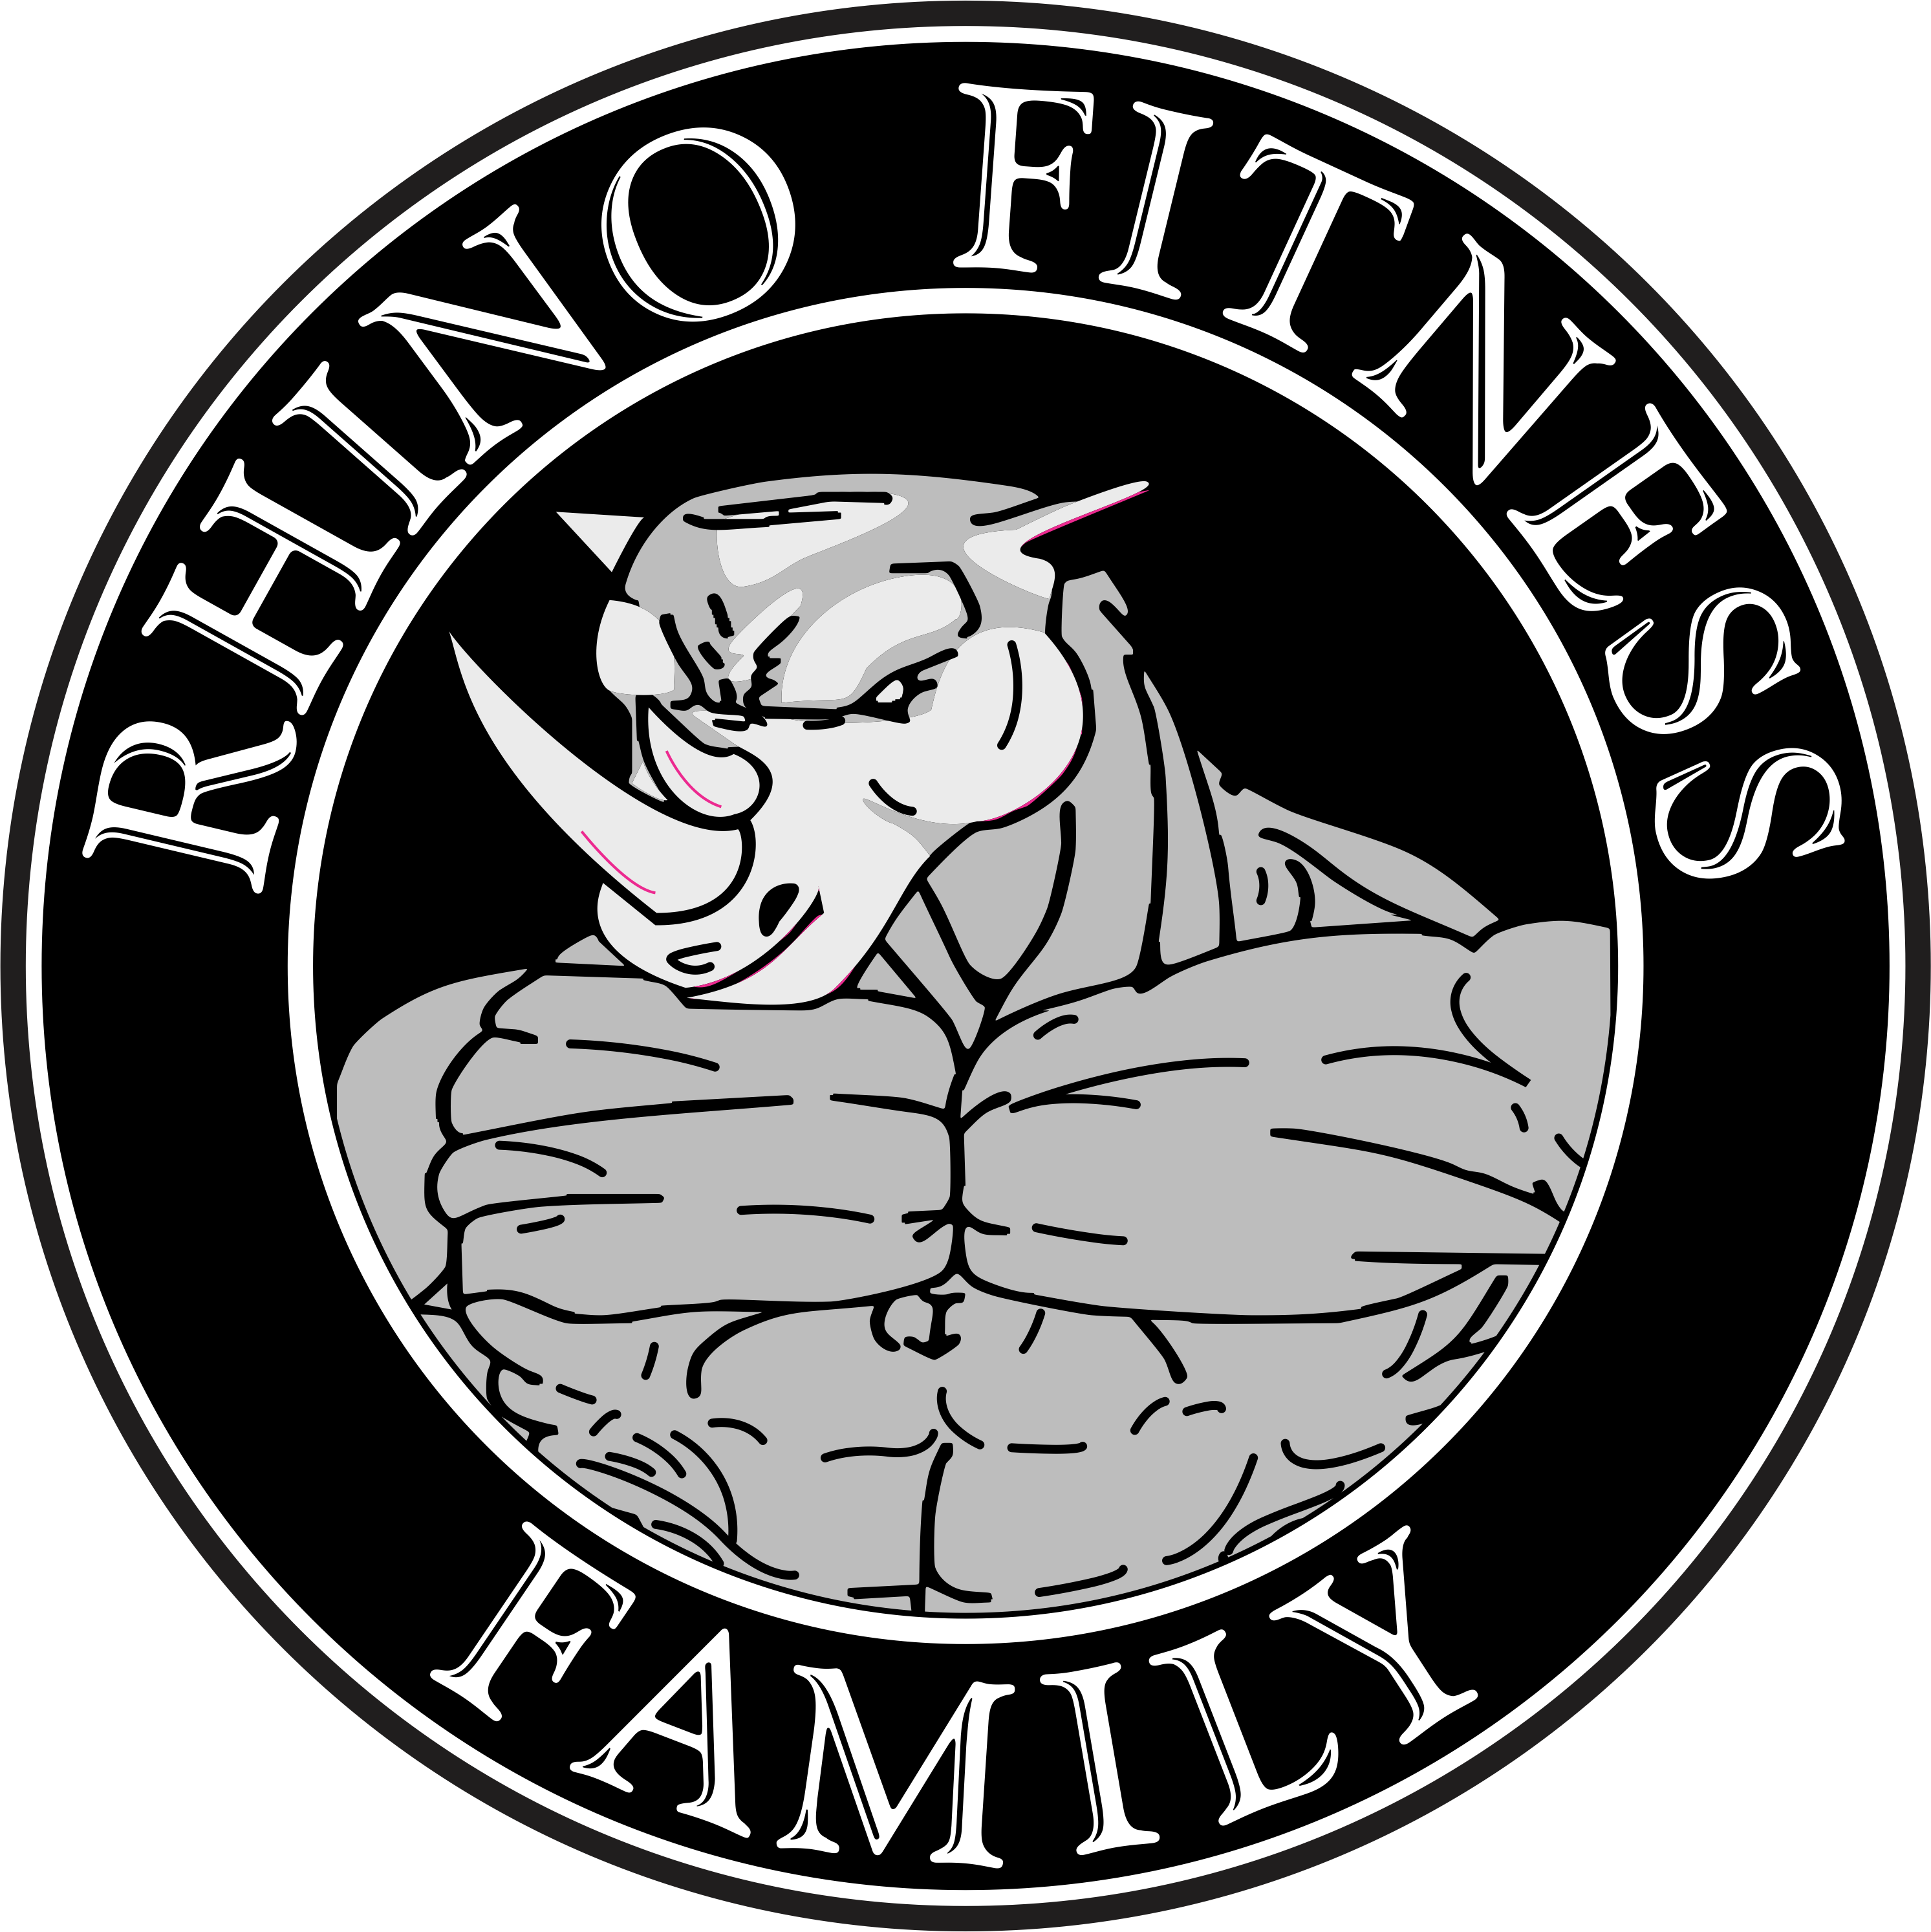 This is a picture of the Rhino Fitness logo.